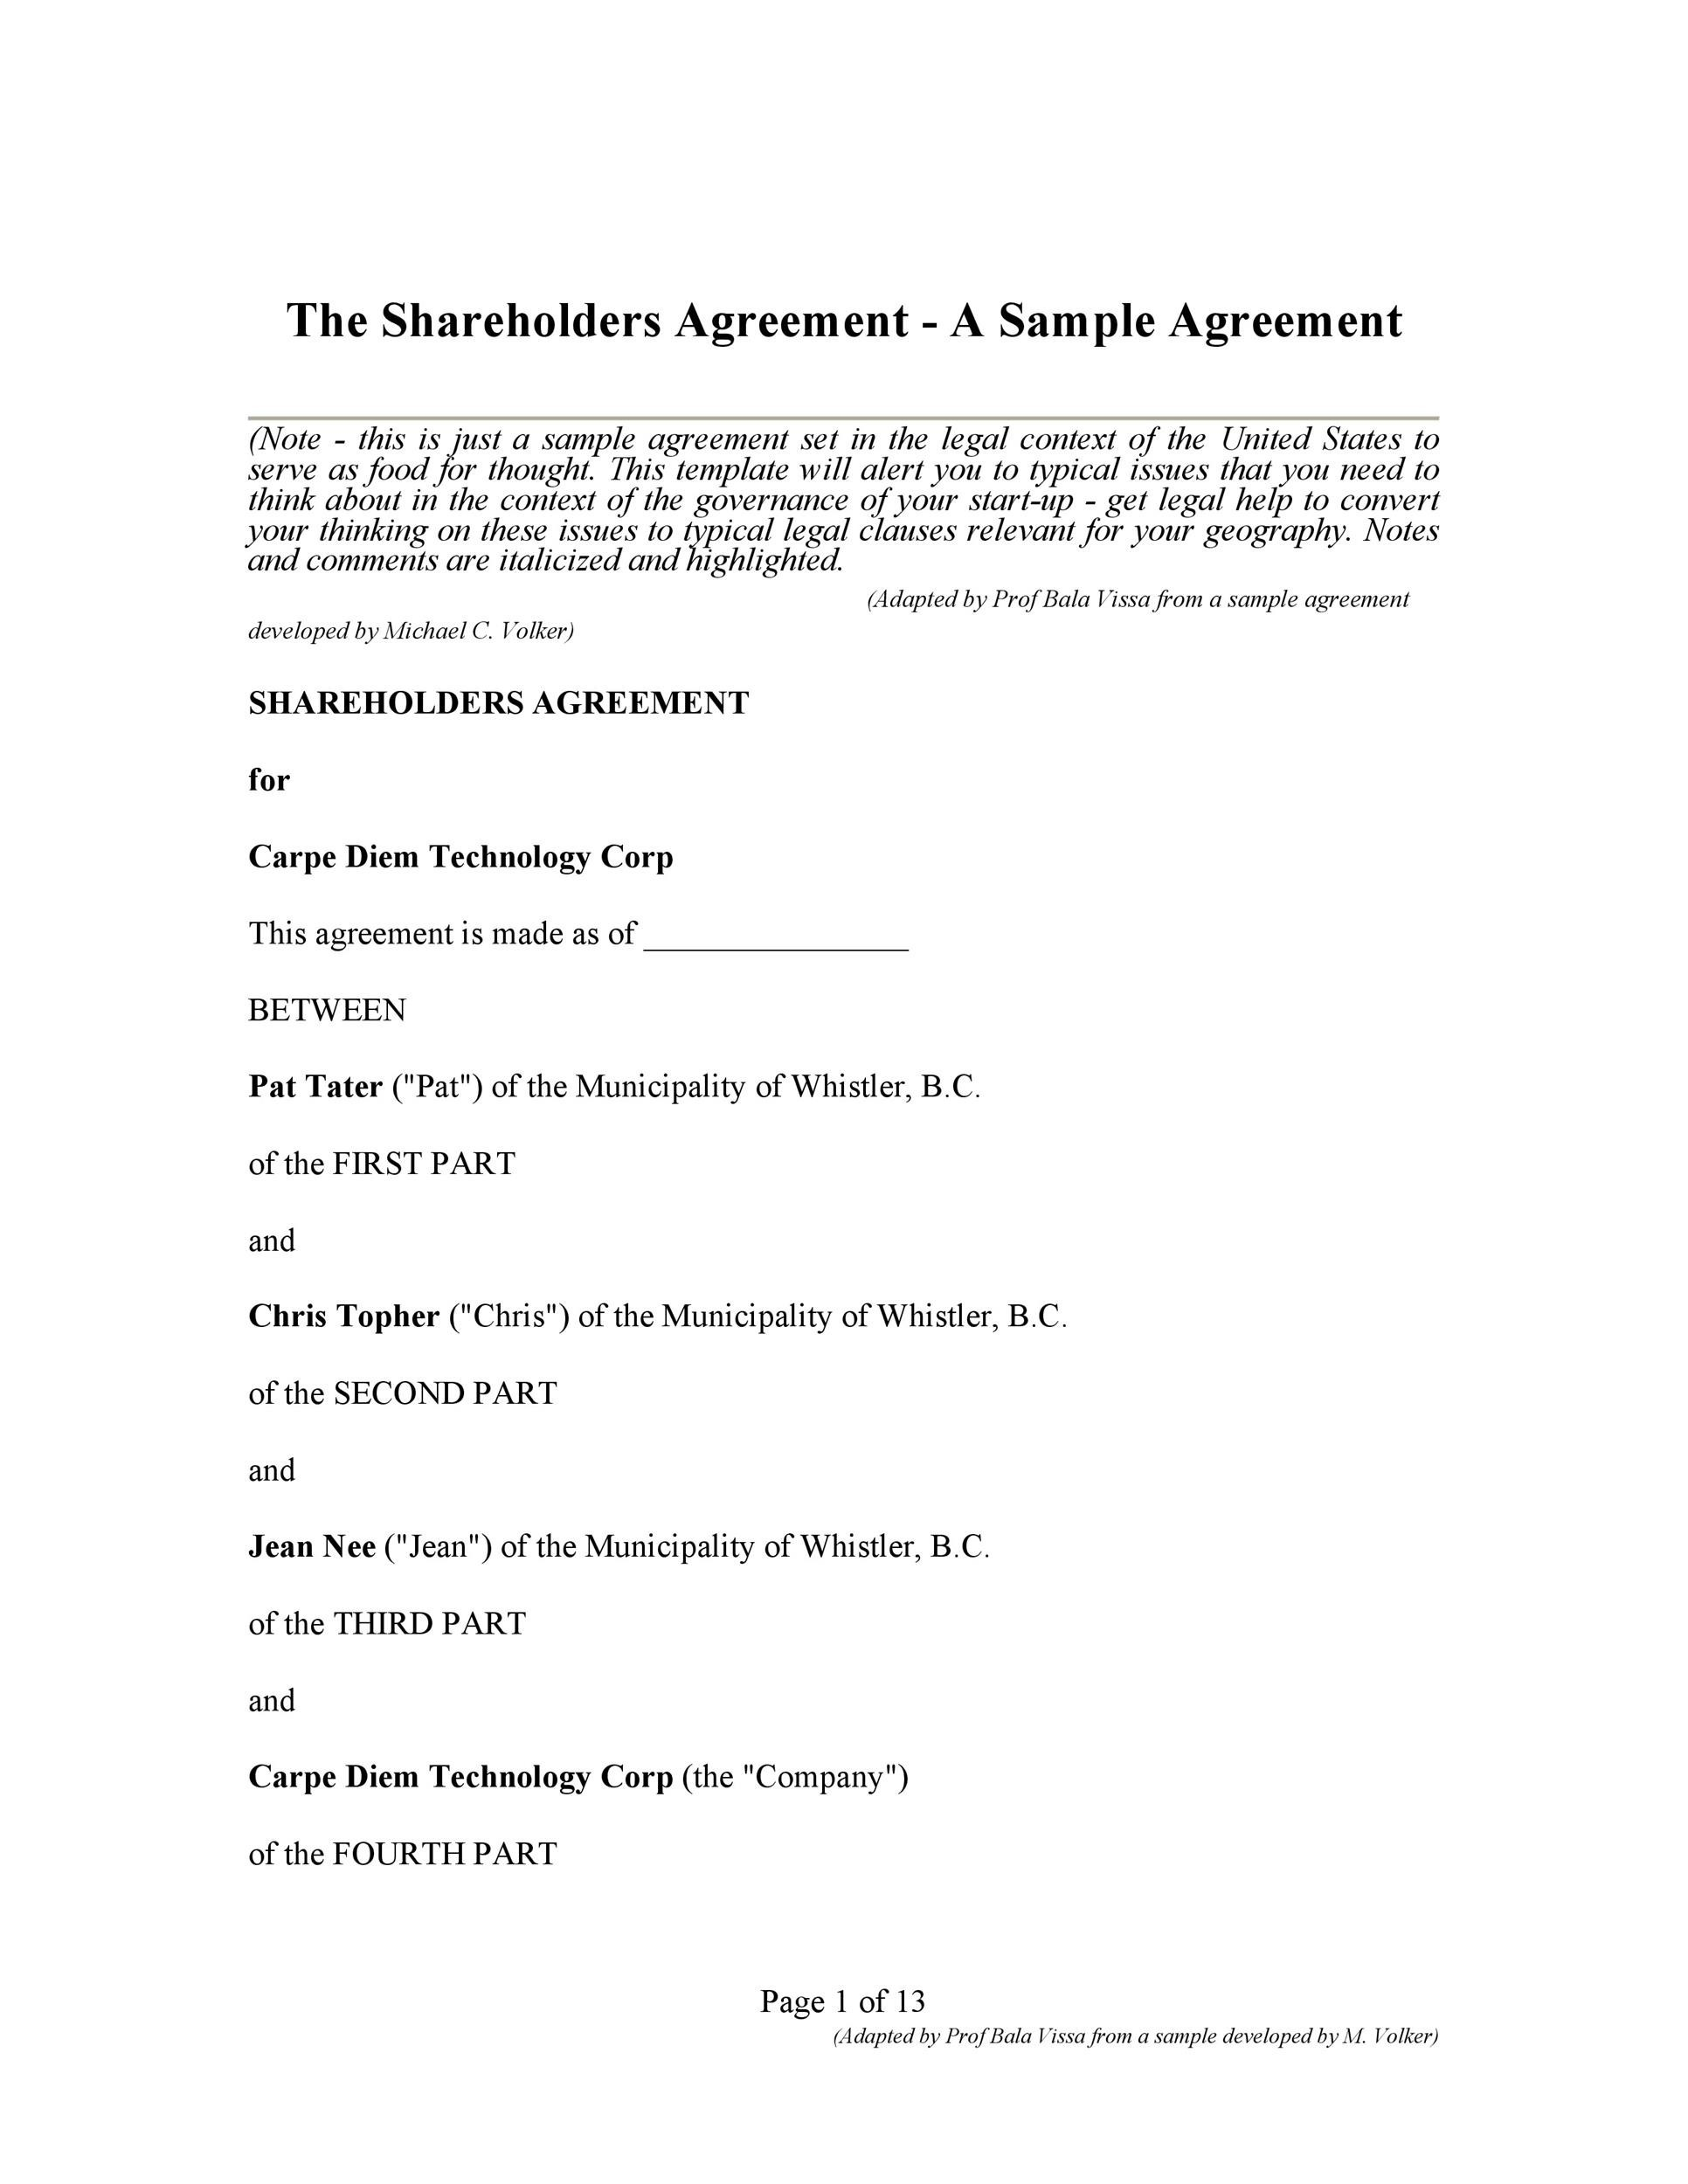 Free shareholder agreement 10